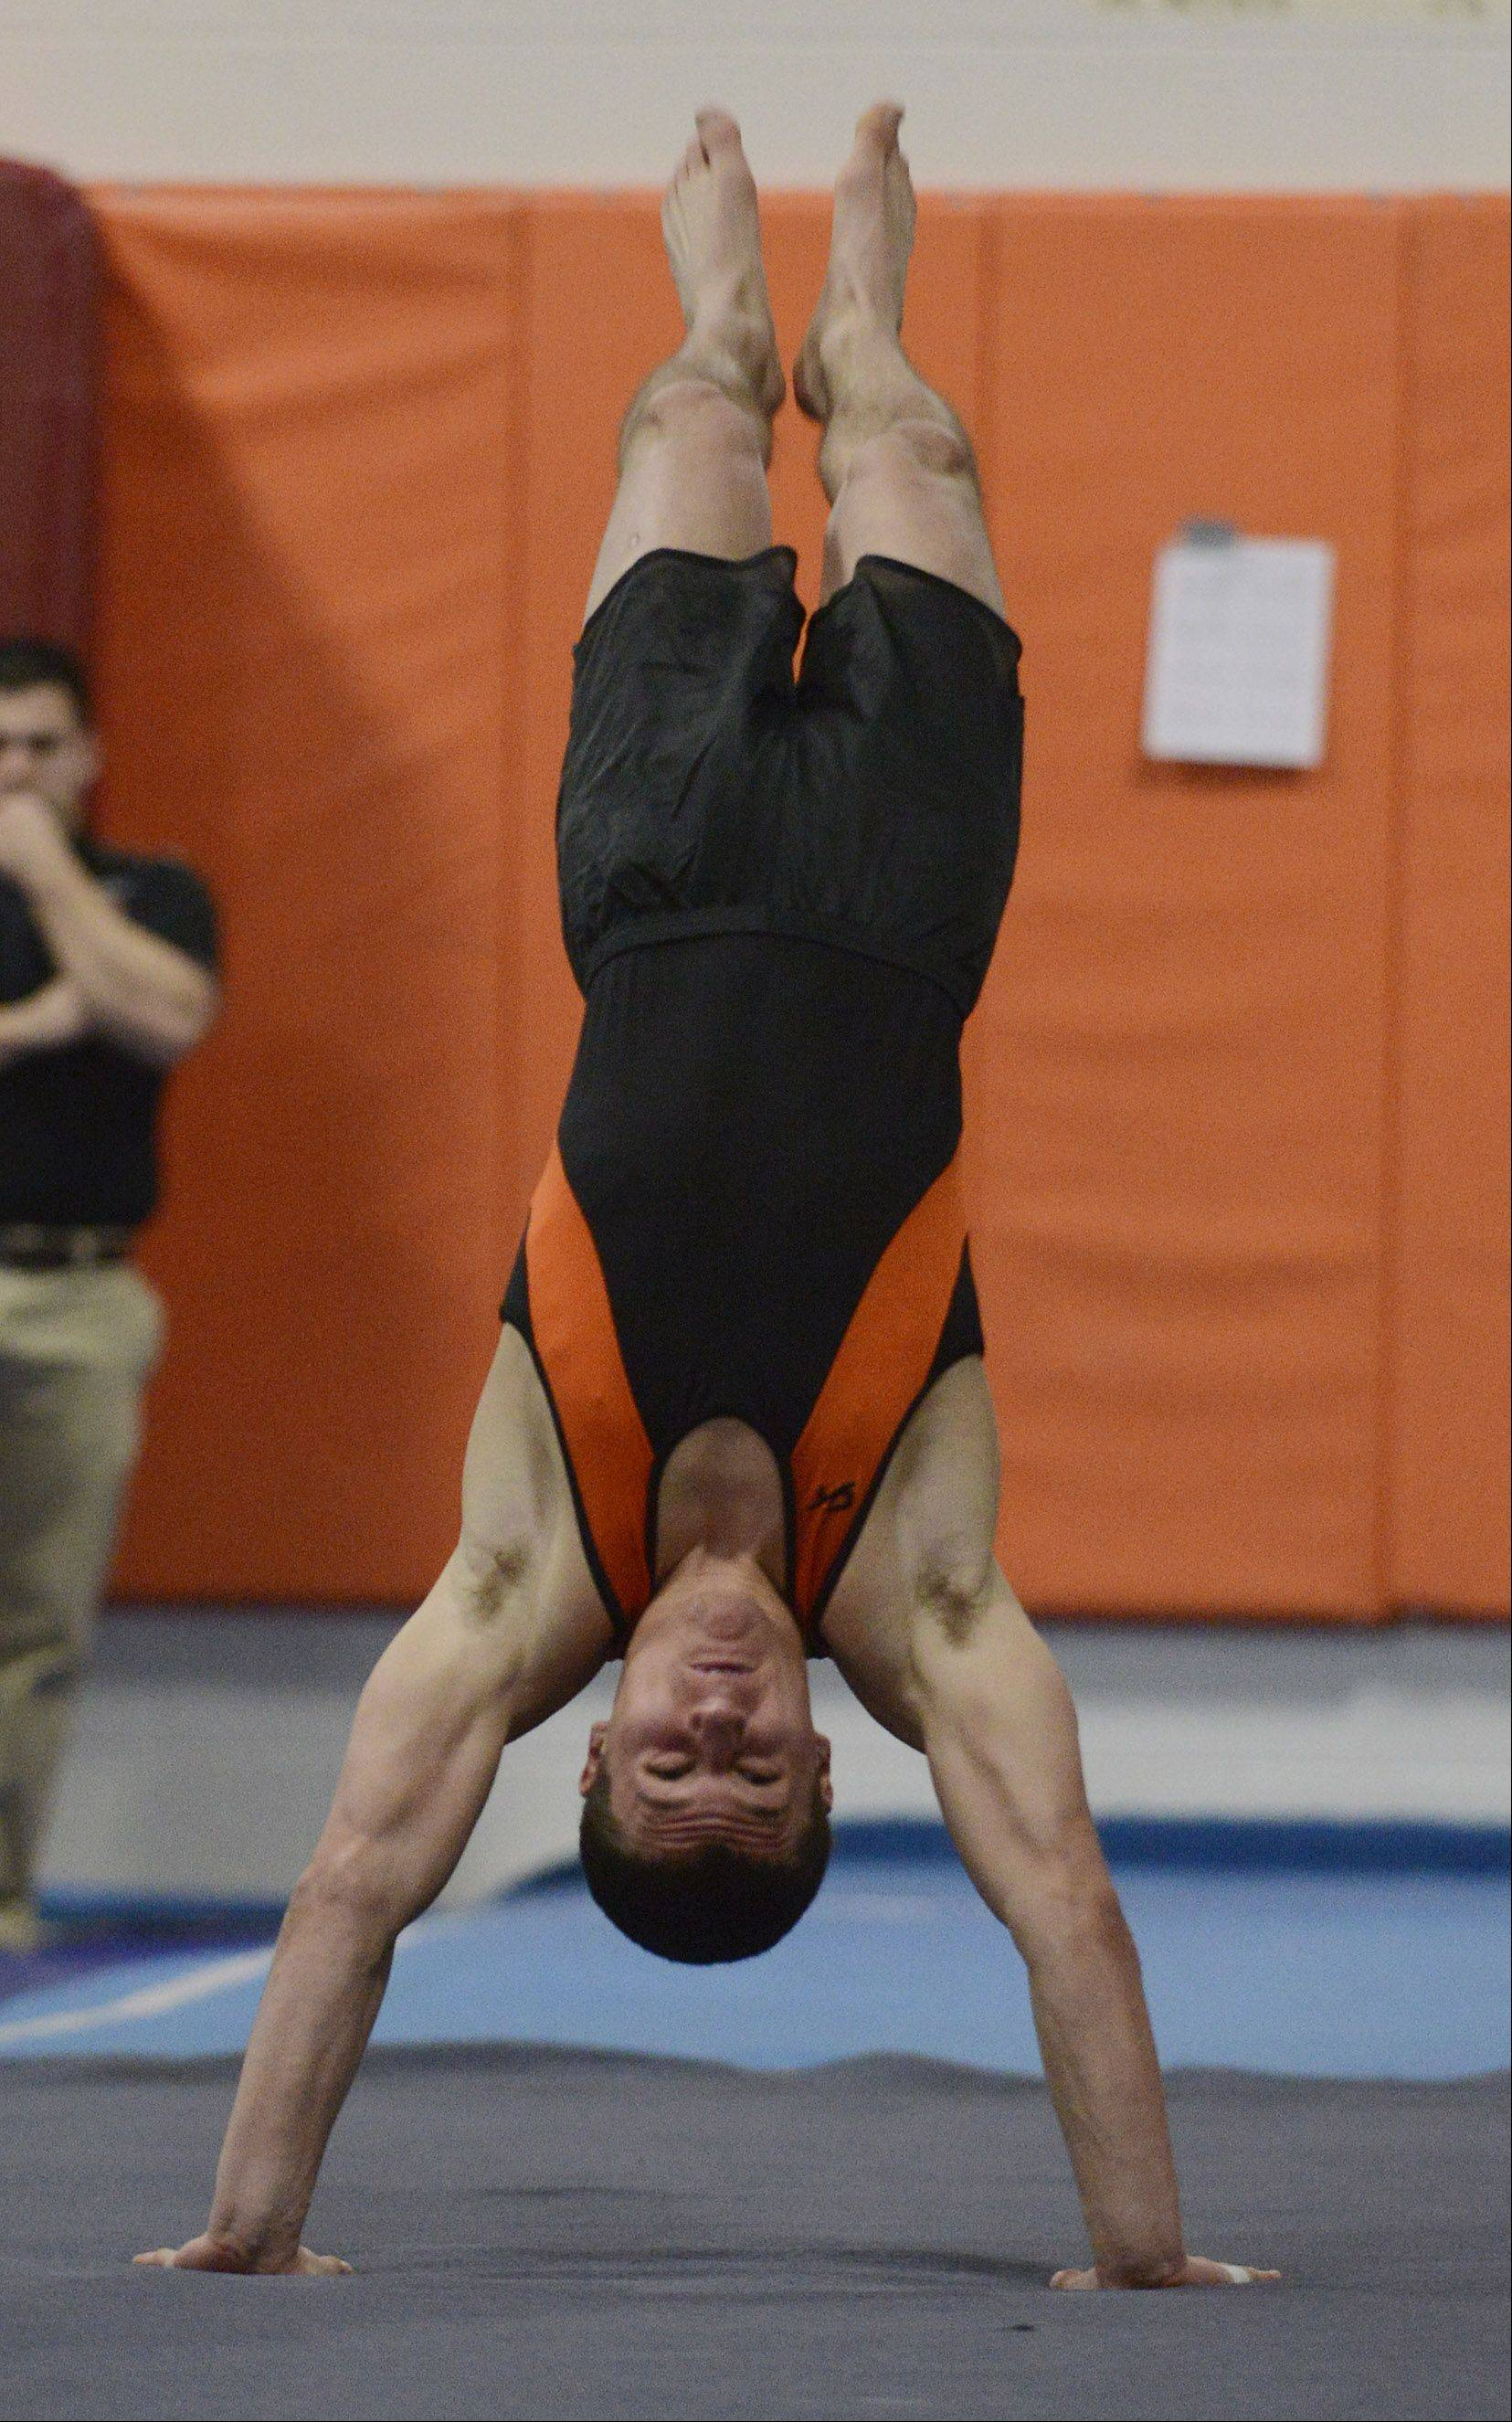 Libertyville's Jack Burke competes on the floor exercise during Saturday's boys gymnastics meet at Libertyville High School.